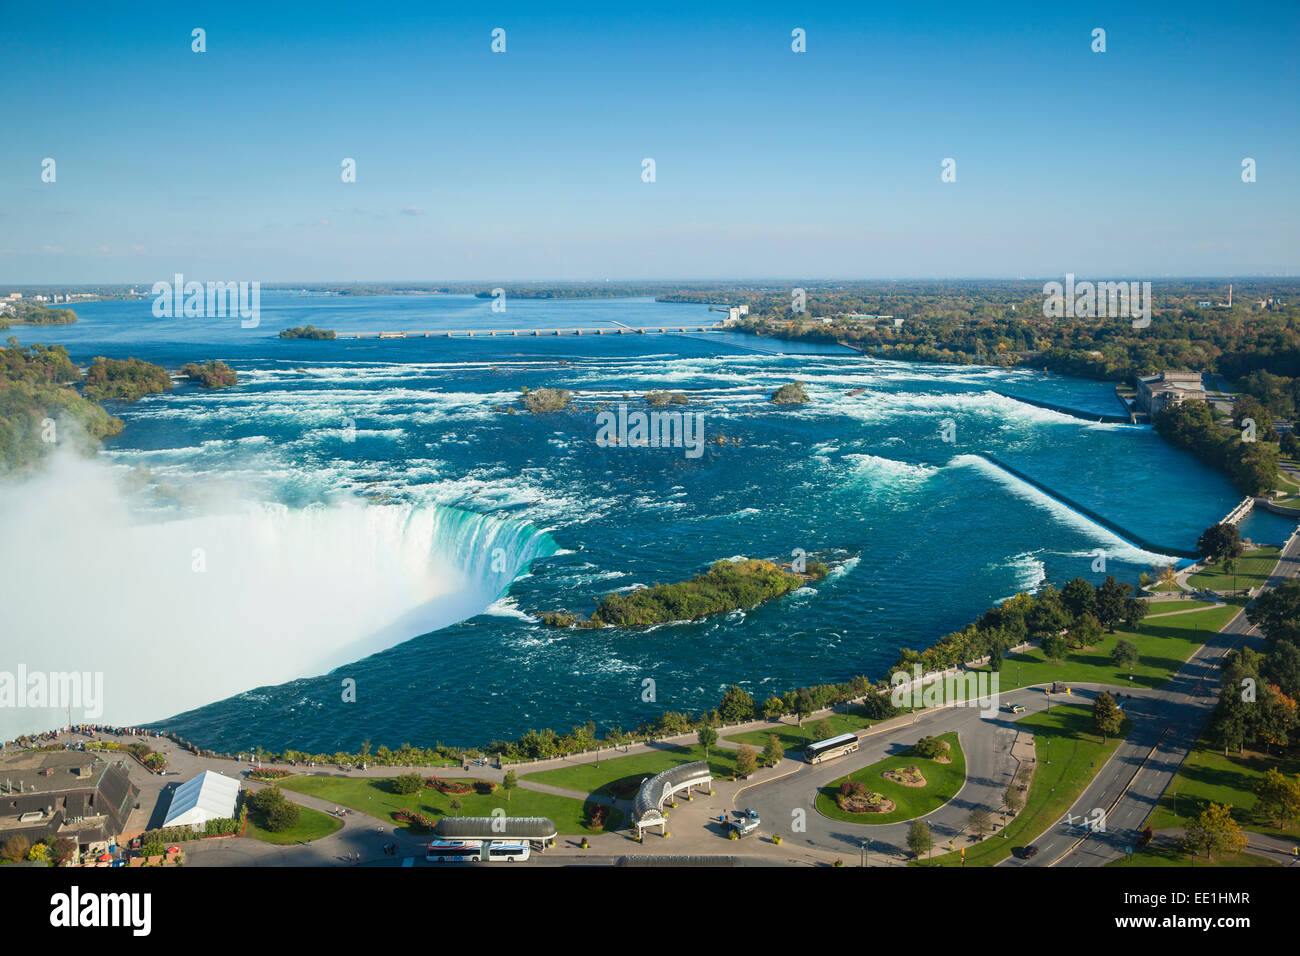 View of Horseshoe Falls, Niagara Falls, Niagara, border of New York State, and Ontario, Canada, North America - Stock Image